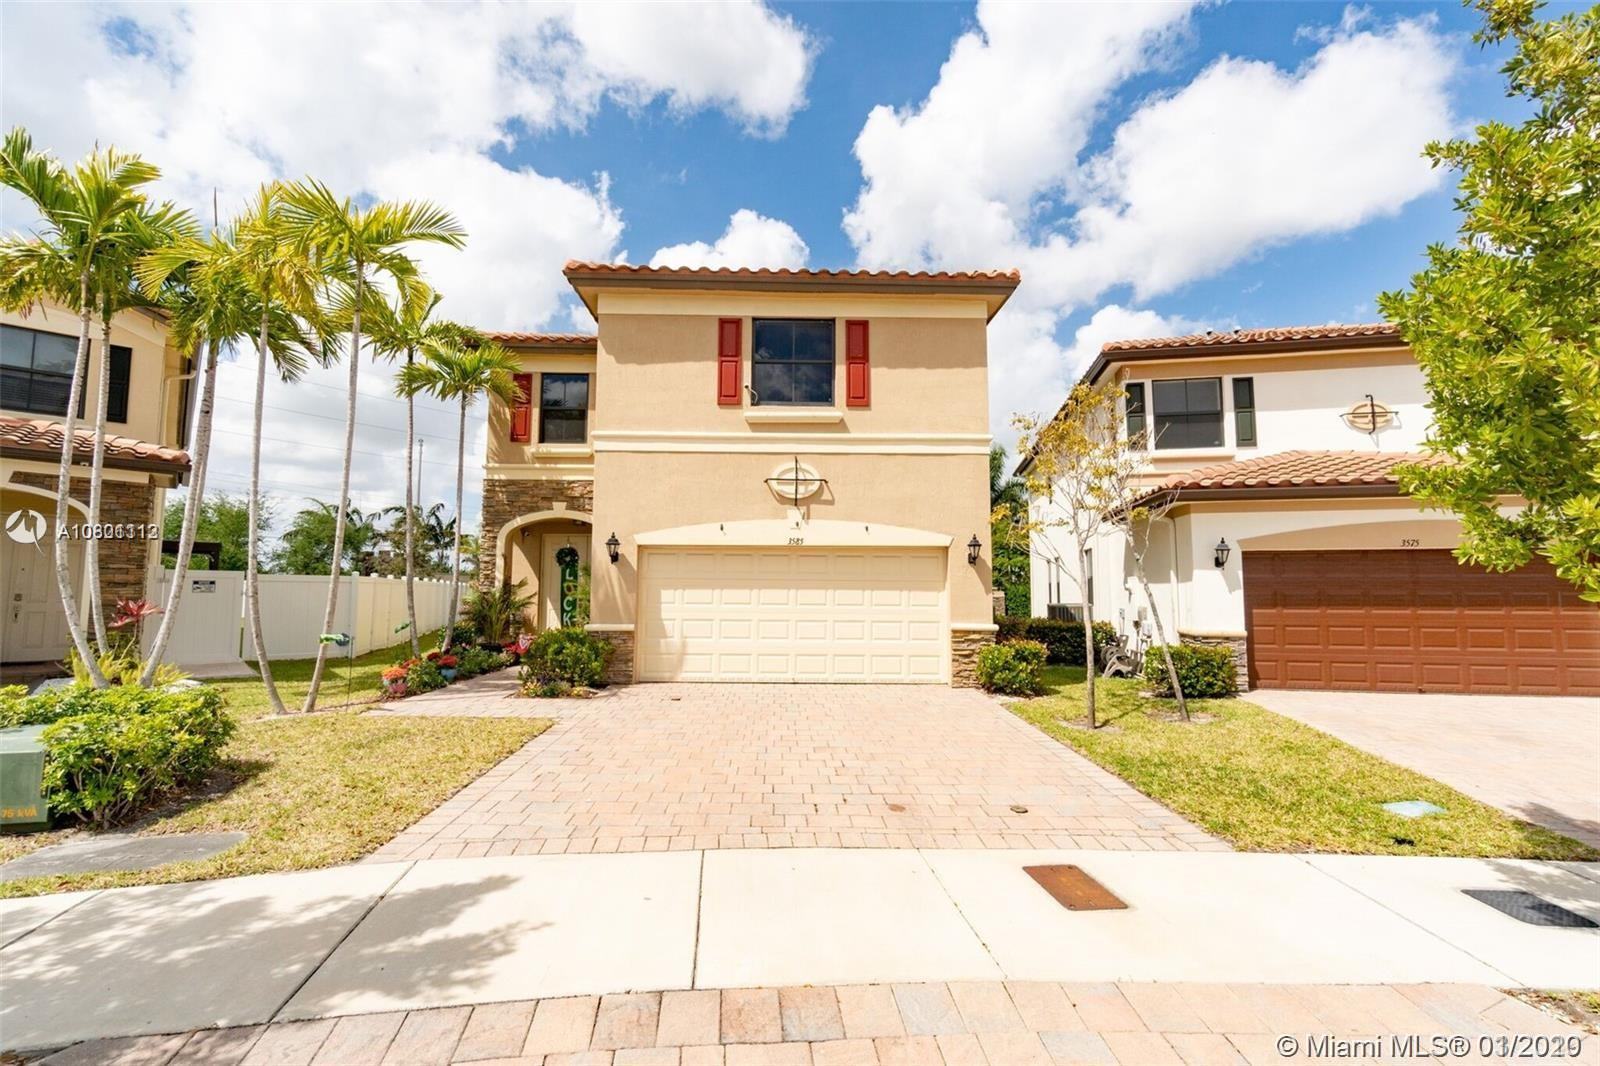 BEAUTIFUL STERLING MODEL AT ARAGON COMMUNITY, 4-BEDROOM 3-BATHS AND 1/2 BATH, 2 CAR GARAGE, LIVING AND DINNING AREAS, BIG BEAUTIFUL KITCHEN WITH GRANITE COUNTER TOPS AND IT HAS GREAT AMENITIES! THIS HOUSE HAS A HUGE BACK YARD